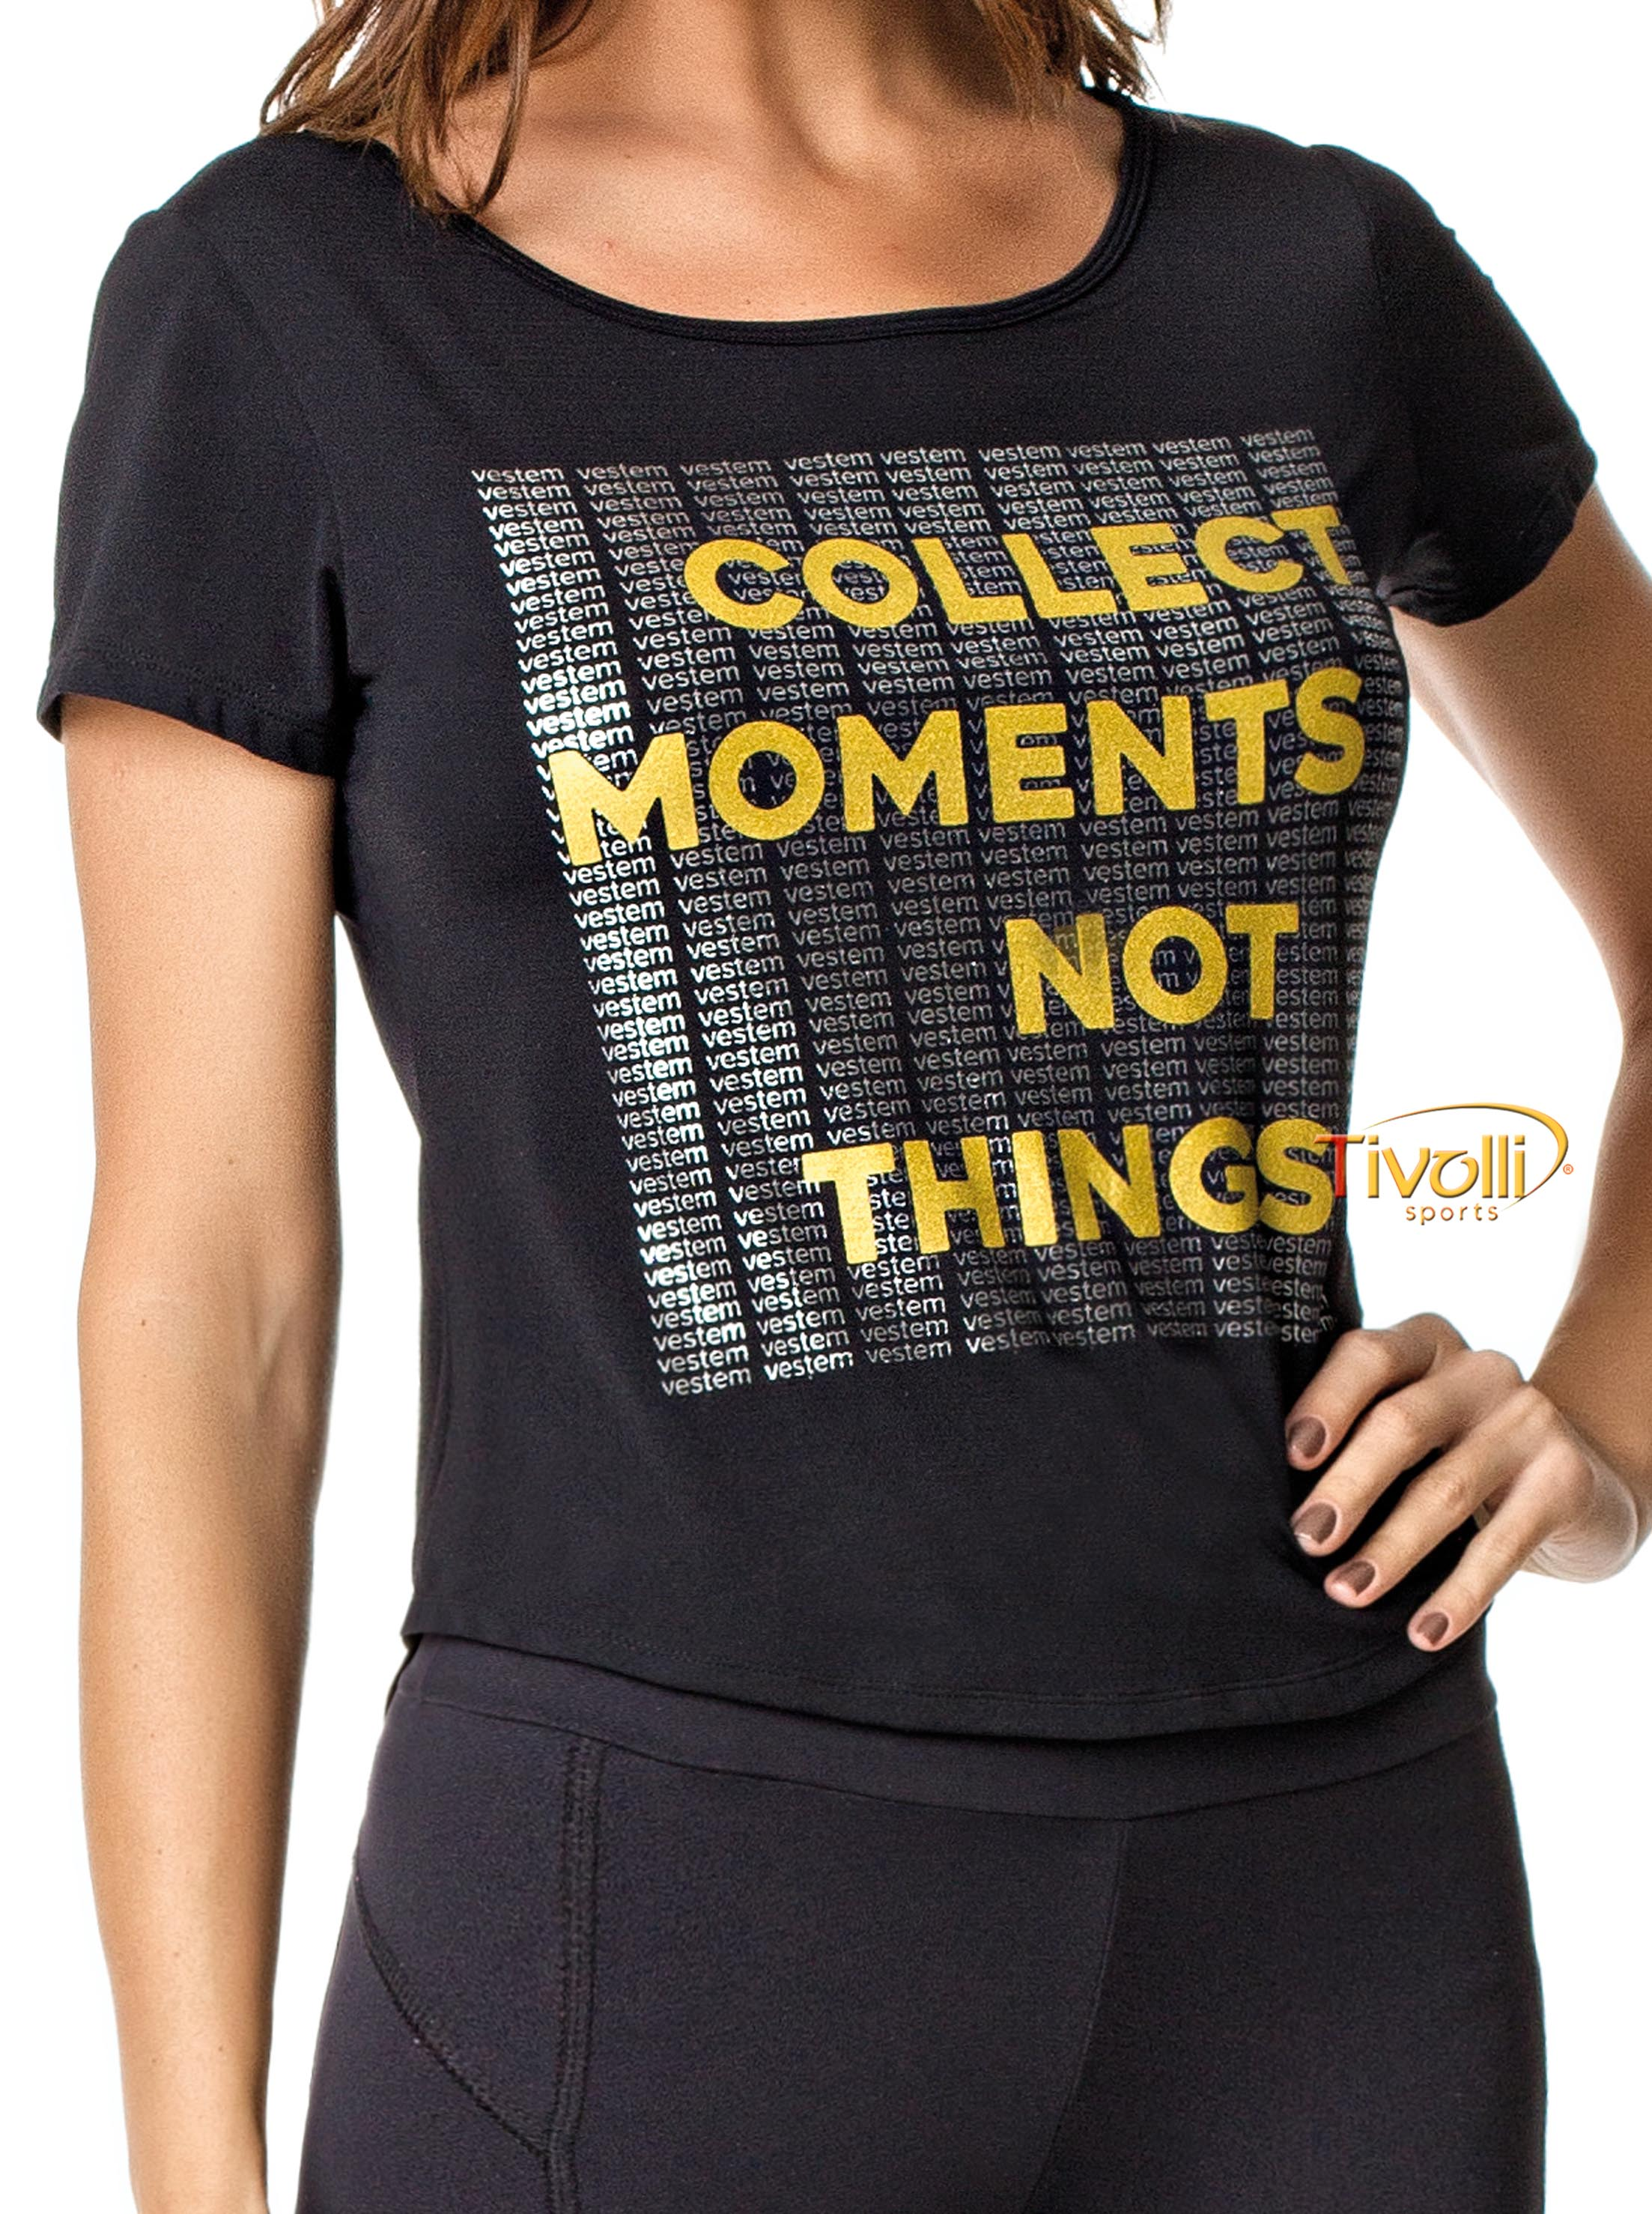 Blusa Vestem MC 121 Collect Moments